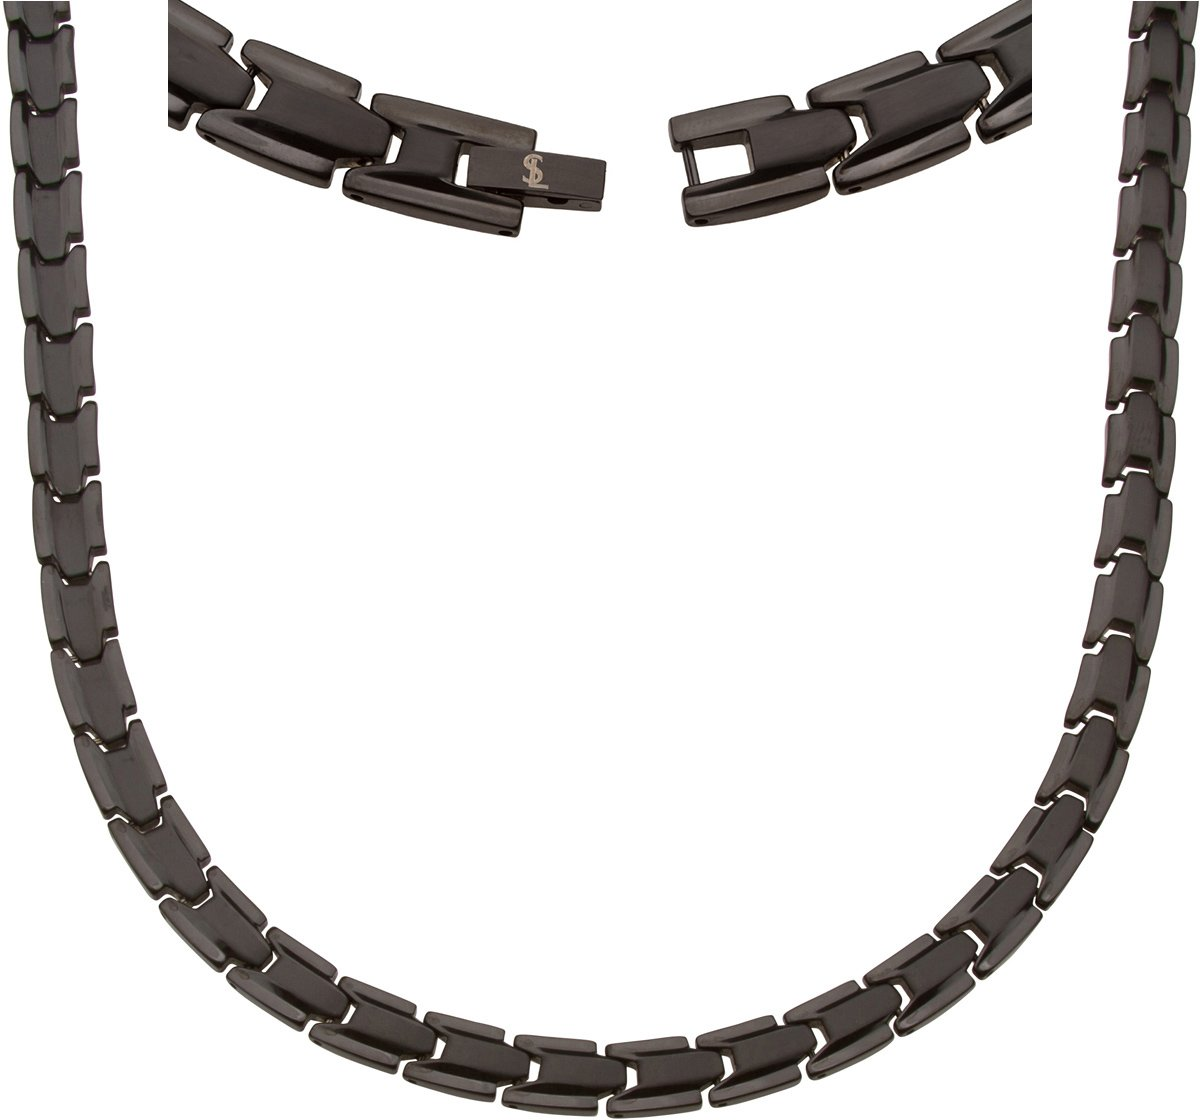 Elegant Titanium Magnetic Therapy Necklace Pain Relief for Neck Arthritis Migraine Headaches Shoulders And Back by Smarter LifeStyle